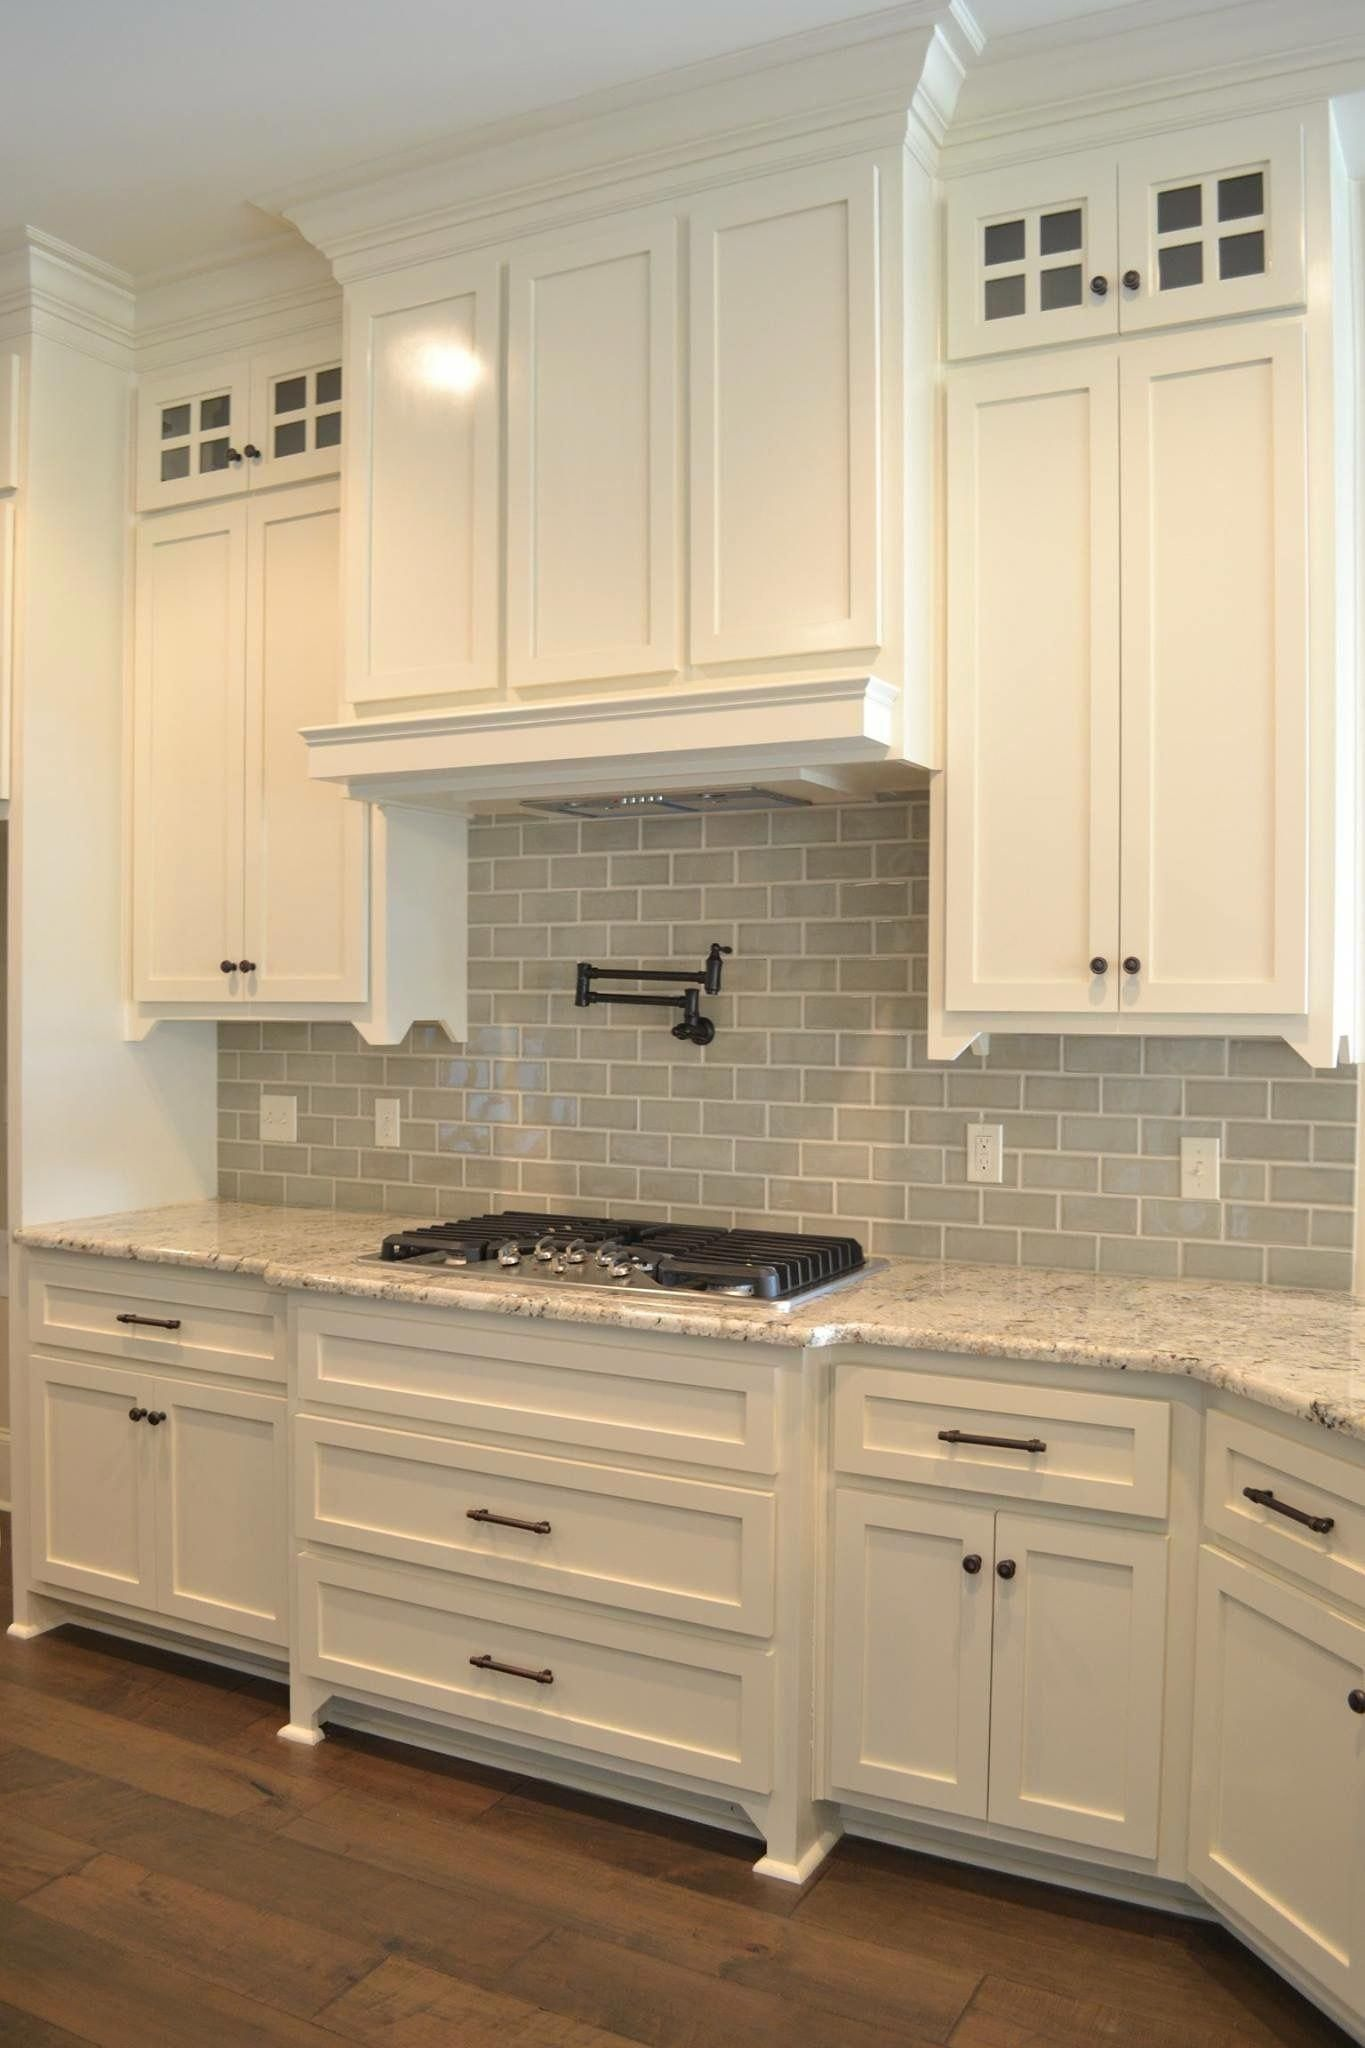 30+ Inexpensive White Kitchen Cabinets Decor Ideas To Try